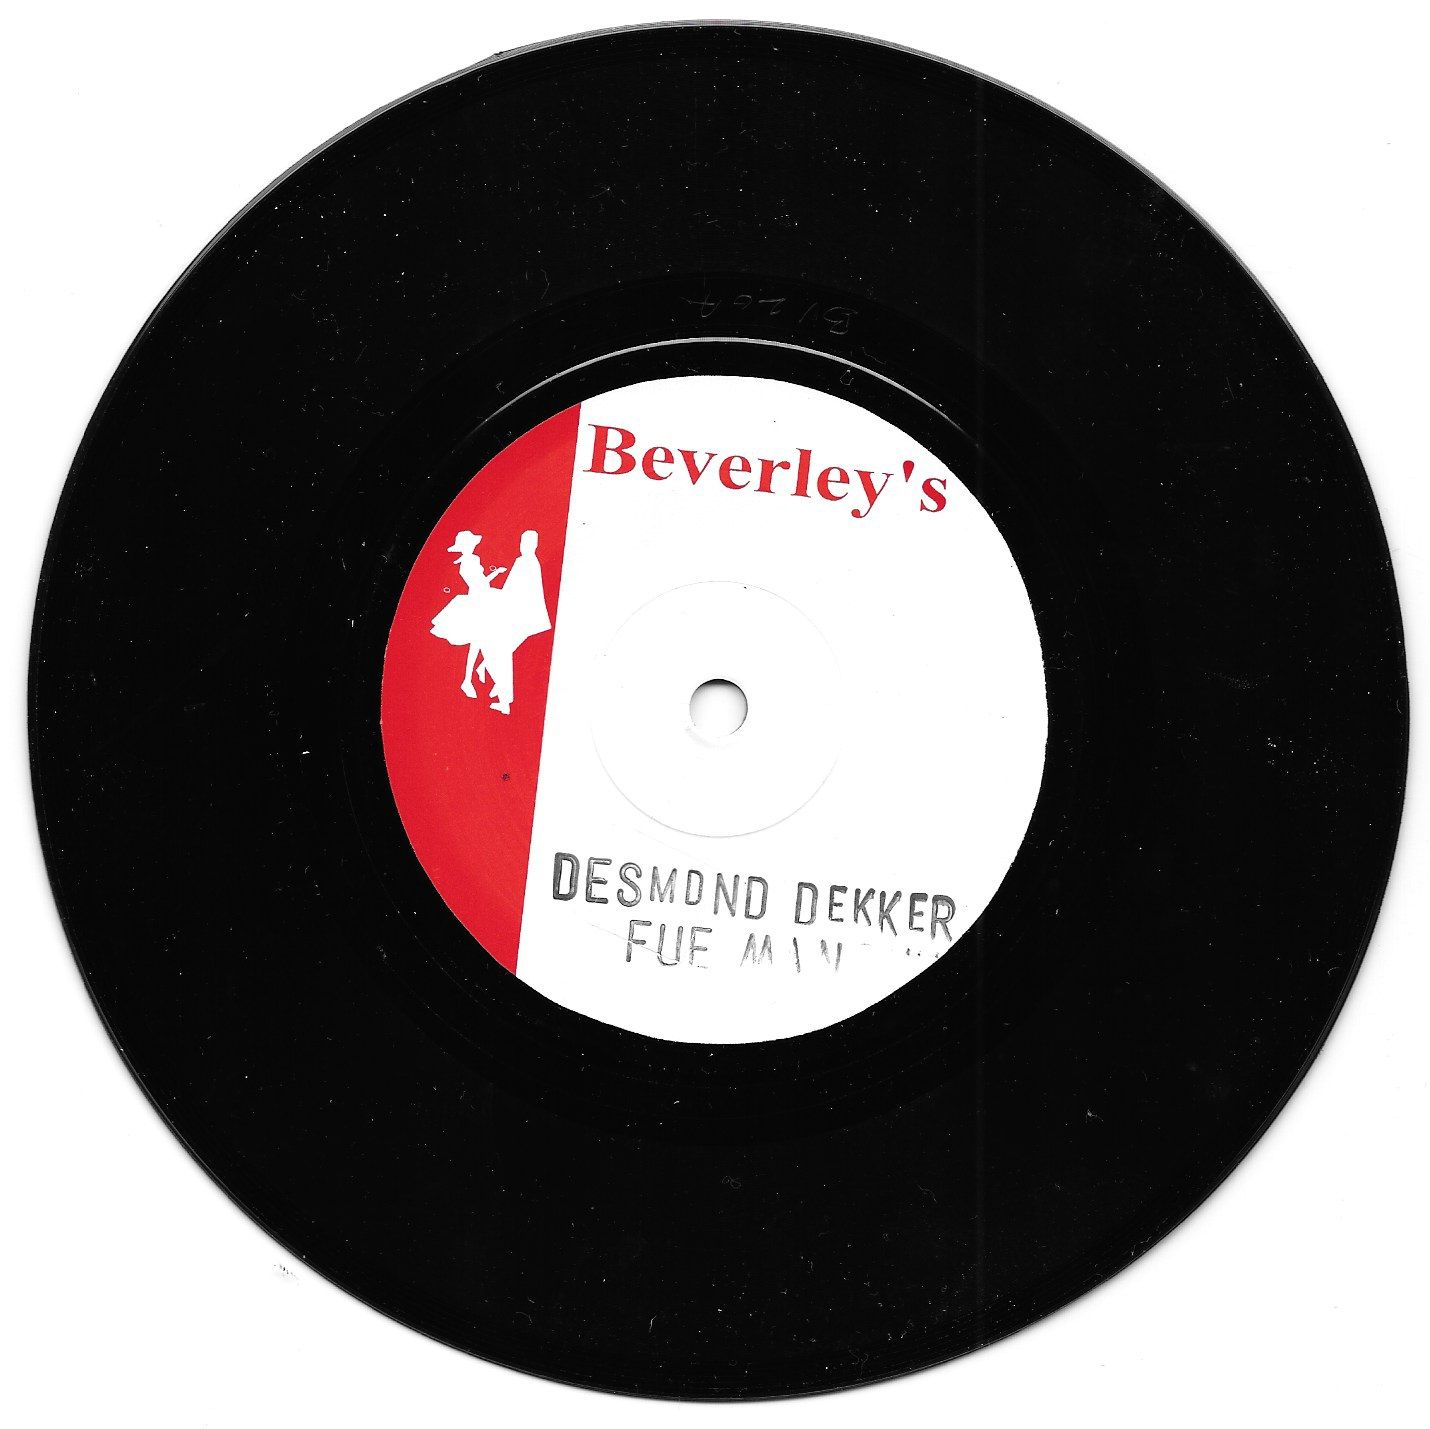 Desmond Dekker - Fu Man Chu / version (Beverley's Records) UK 7""